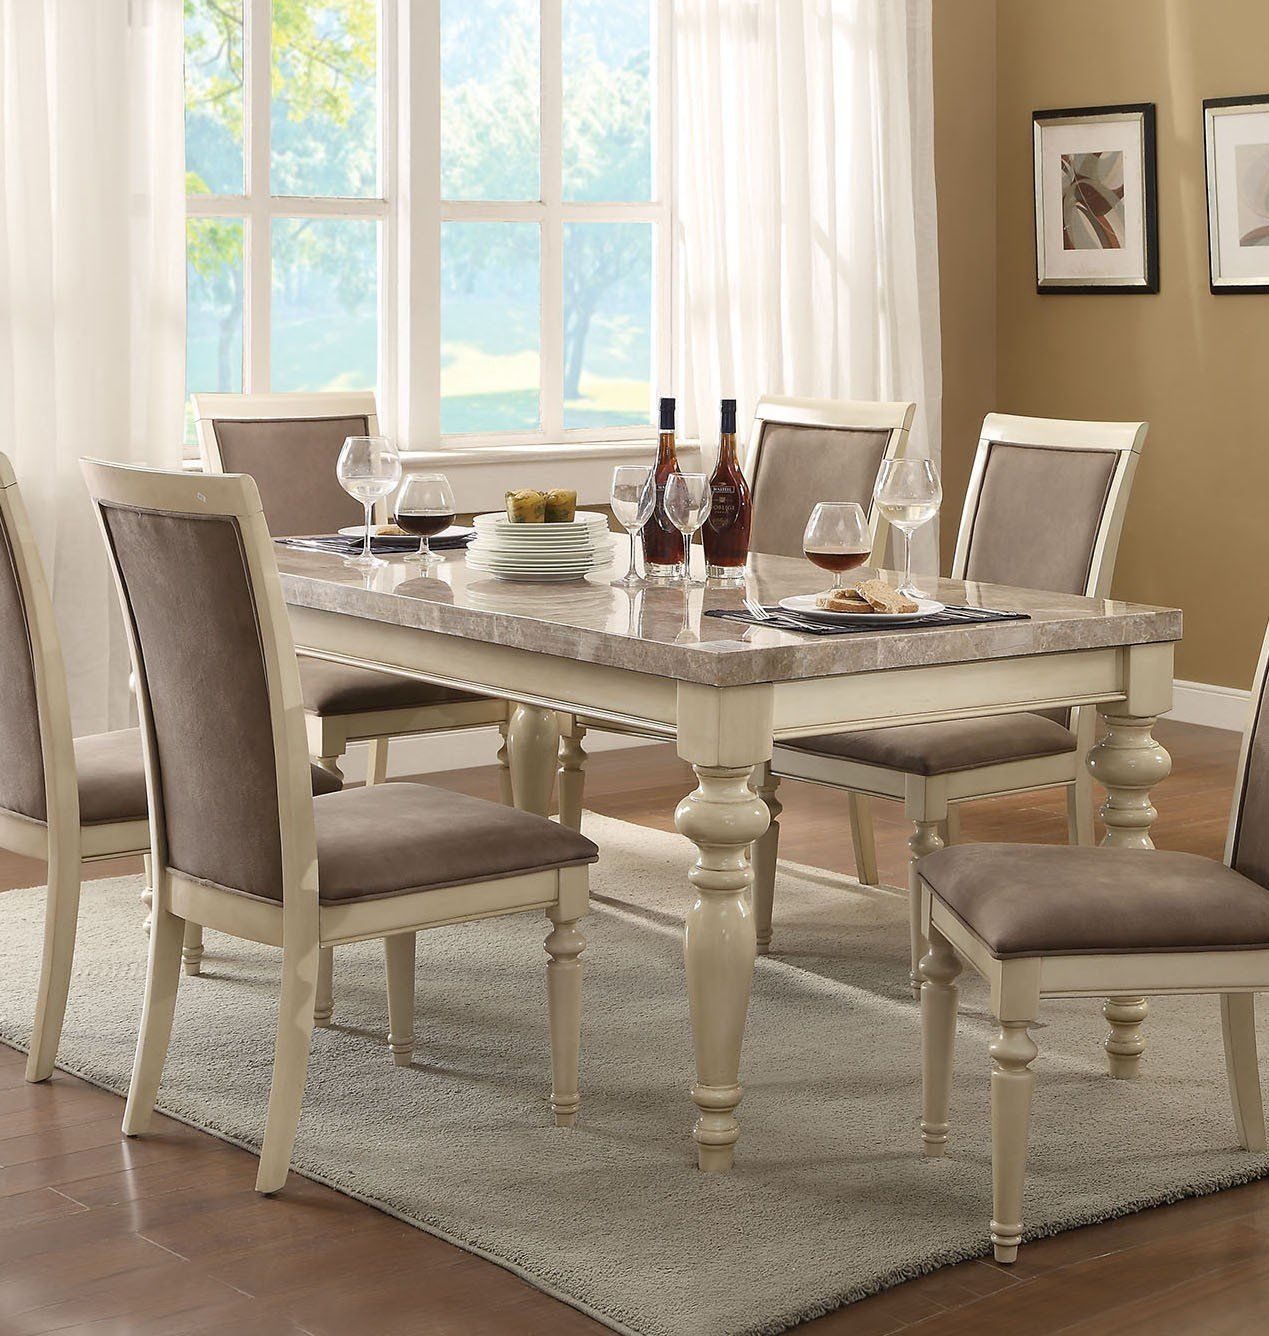 Acme 71705 Ryder Antique White Marble Top Dining Table Marble Top Dining Table Granite Dining Table Dining Table Marble